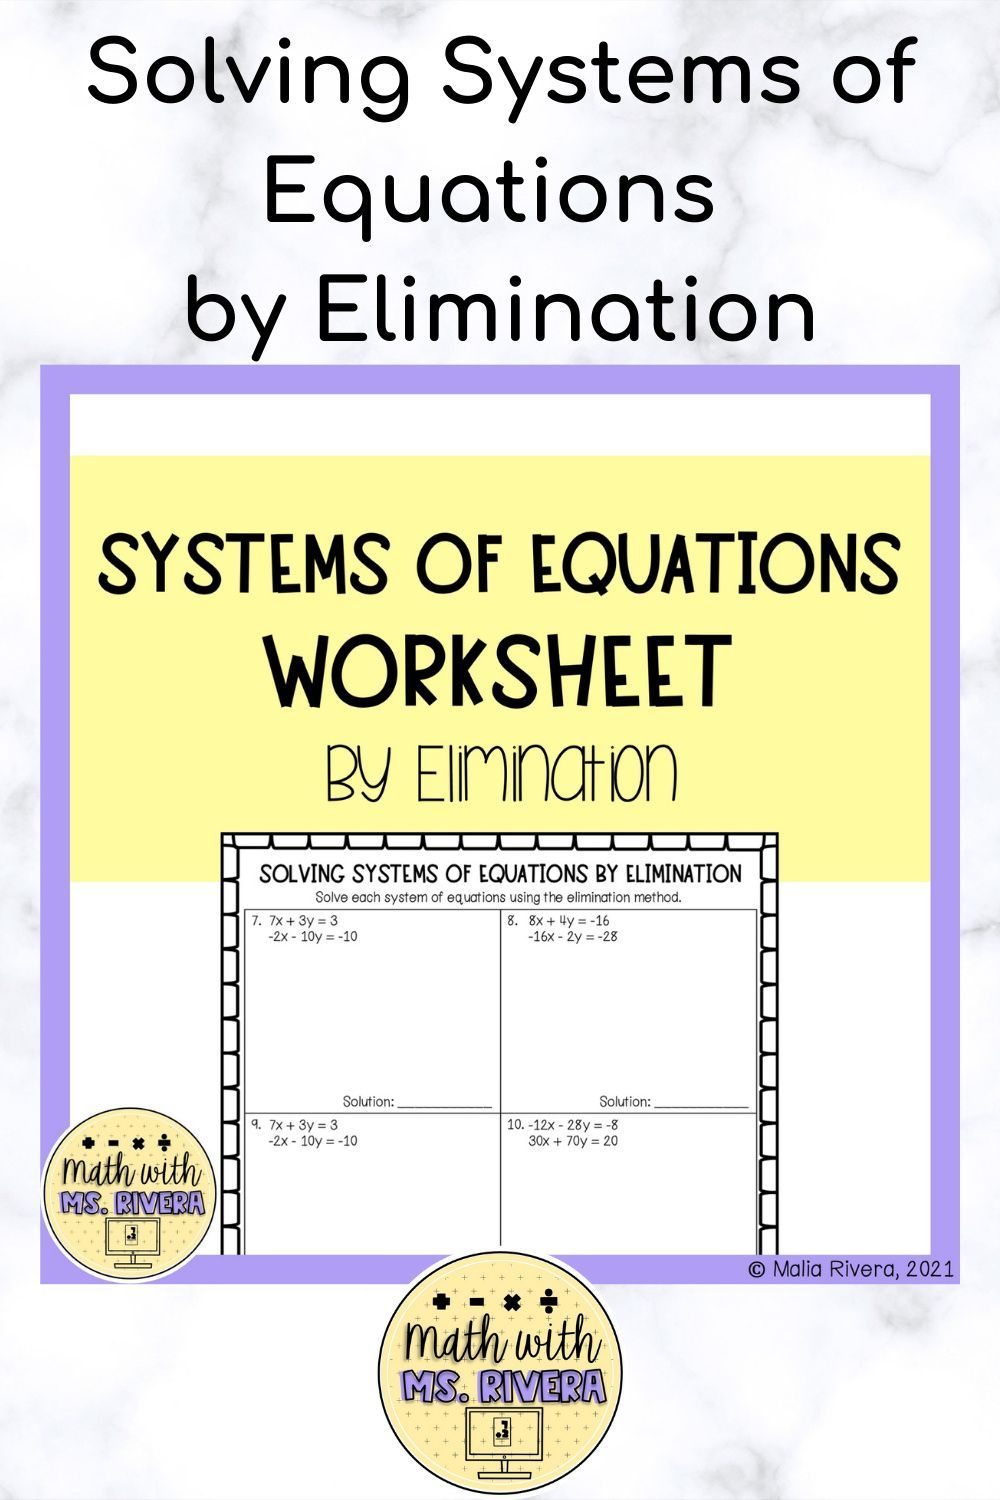 Solving Systems Of Equations By Elimination Worksheet In 2021 Systems Of Equations Equations Algebra Resources [ 1500 x 1000 Pixel ]